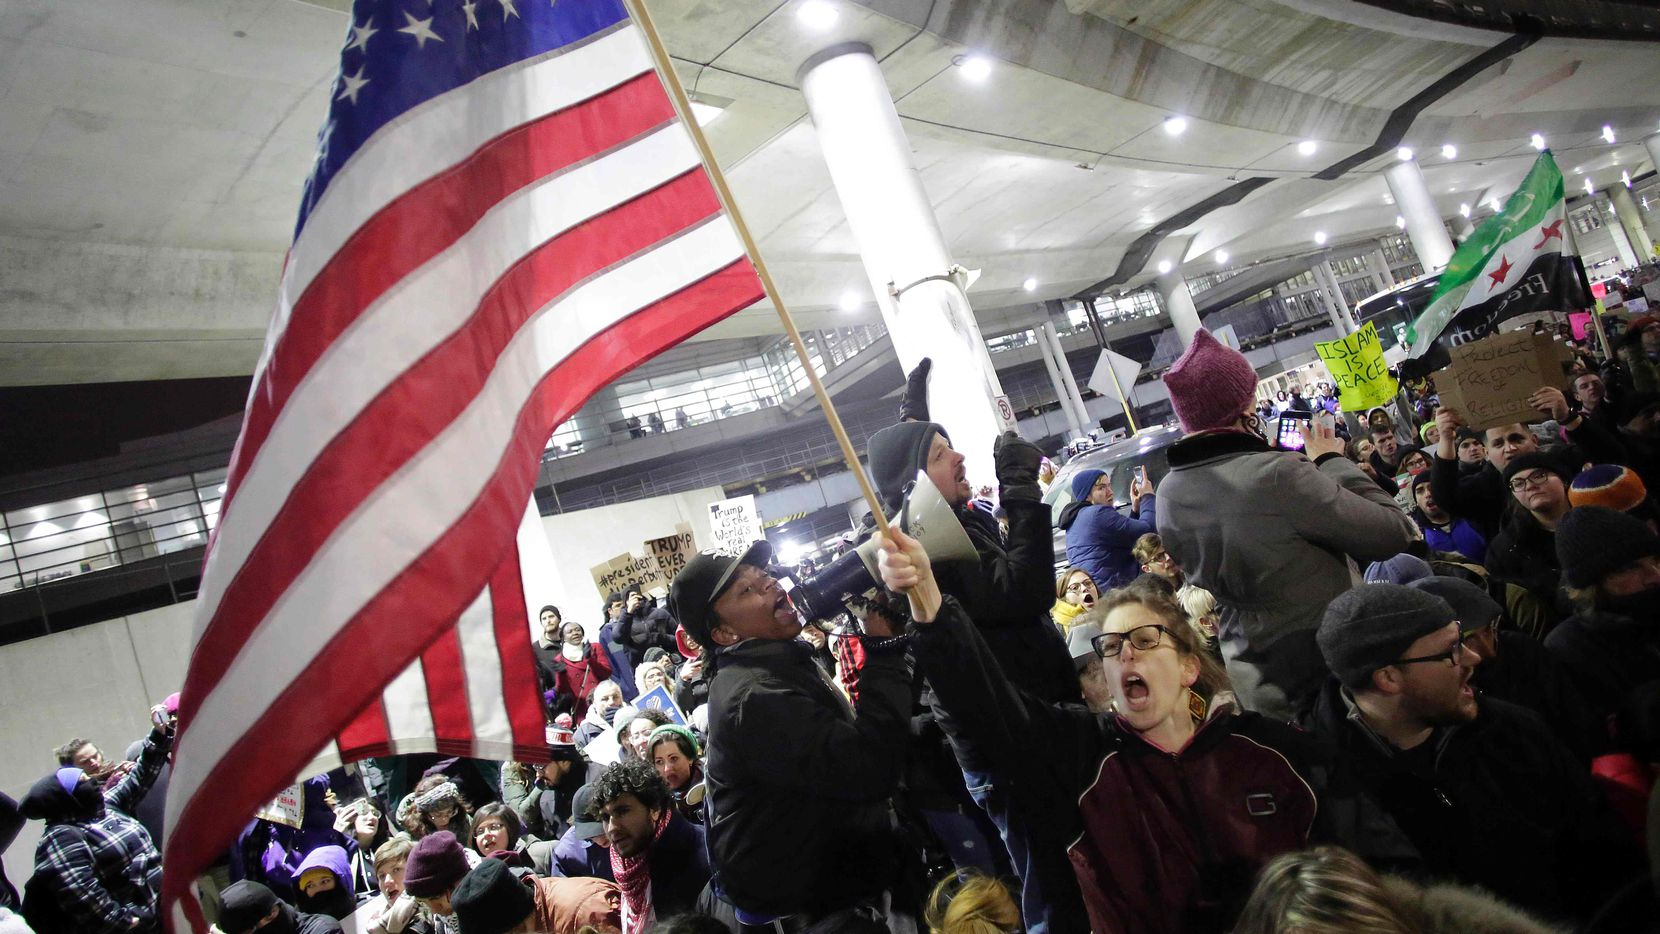 Demonstrators protest agaist President Trump's executive immigration ban at Chicago O'Hare International Airport on January 28, 2017.